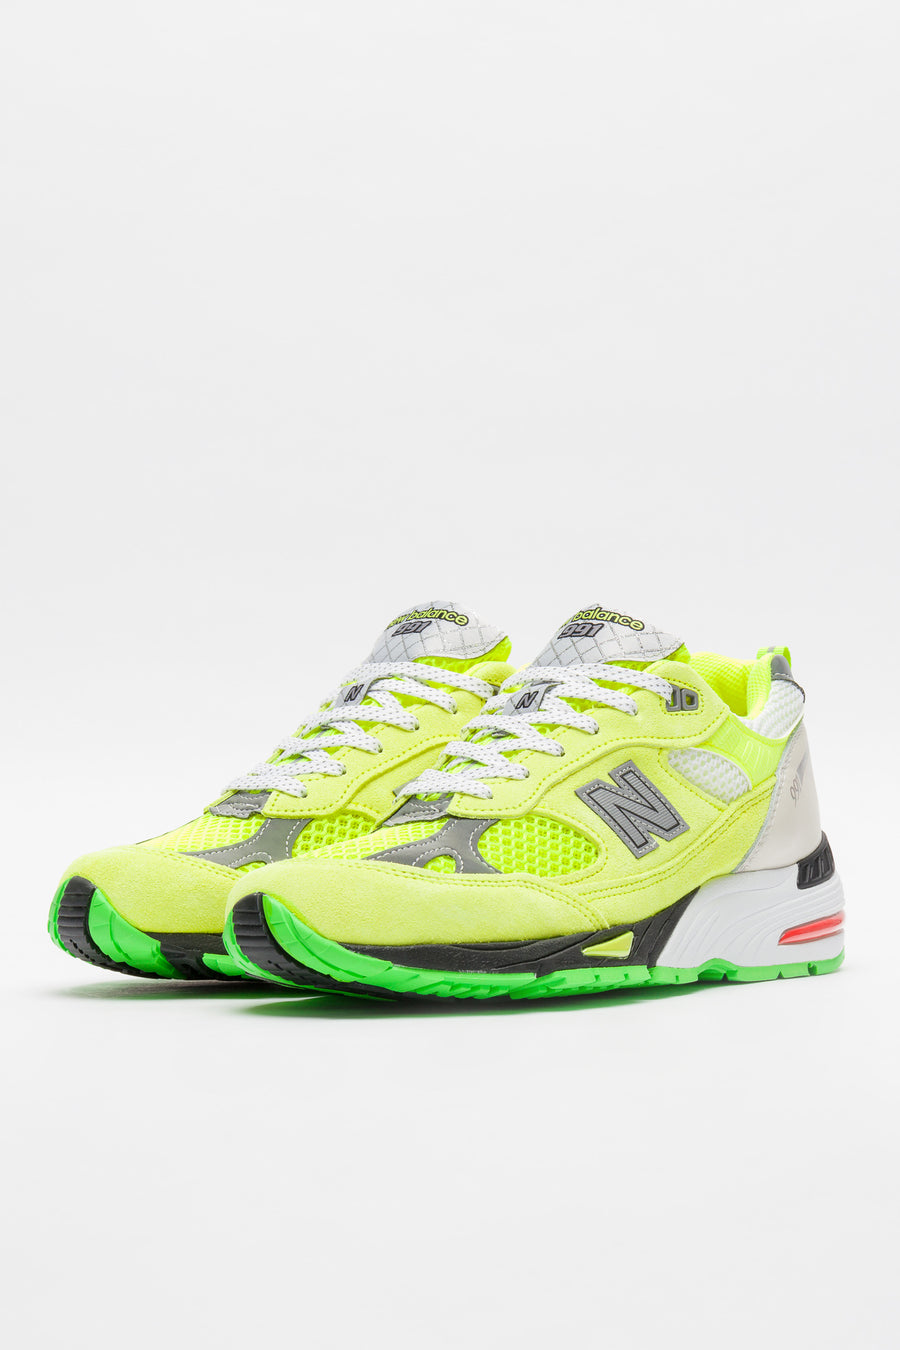 New Balance Aries M991AFL in Neon Yellow - Notre